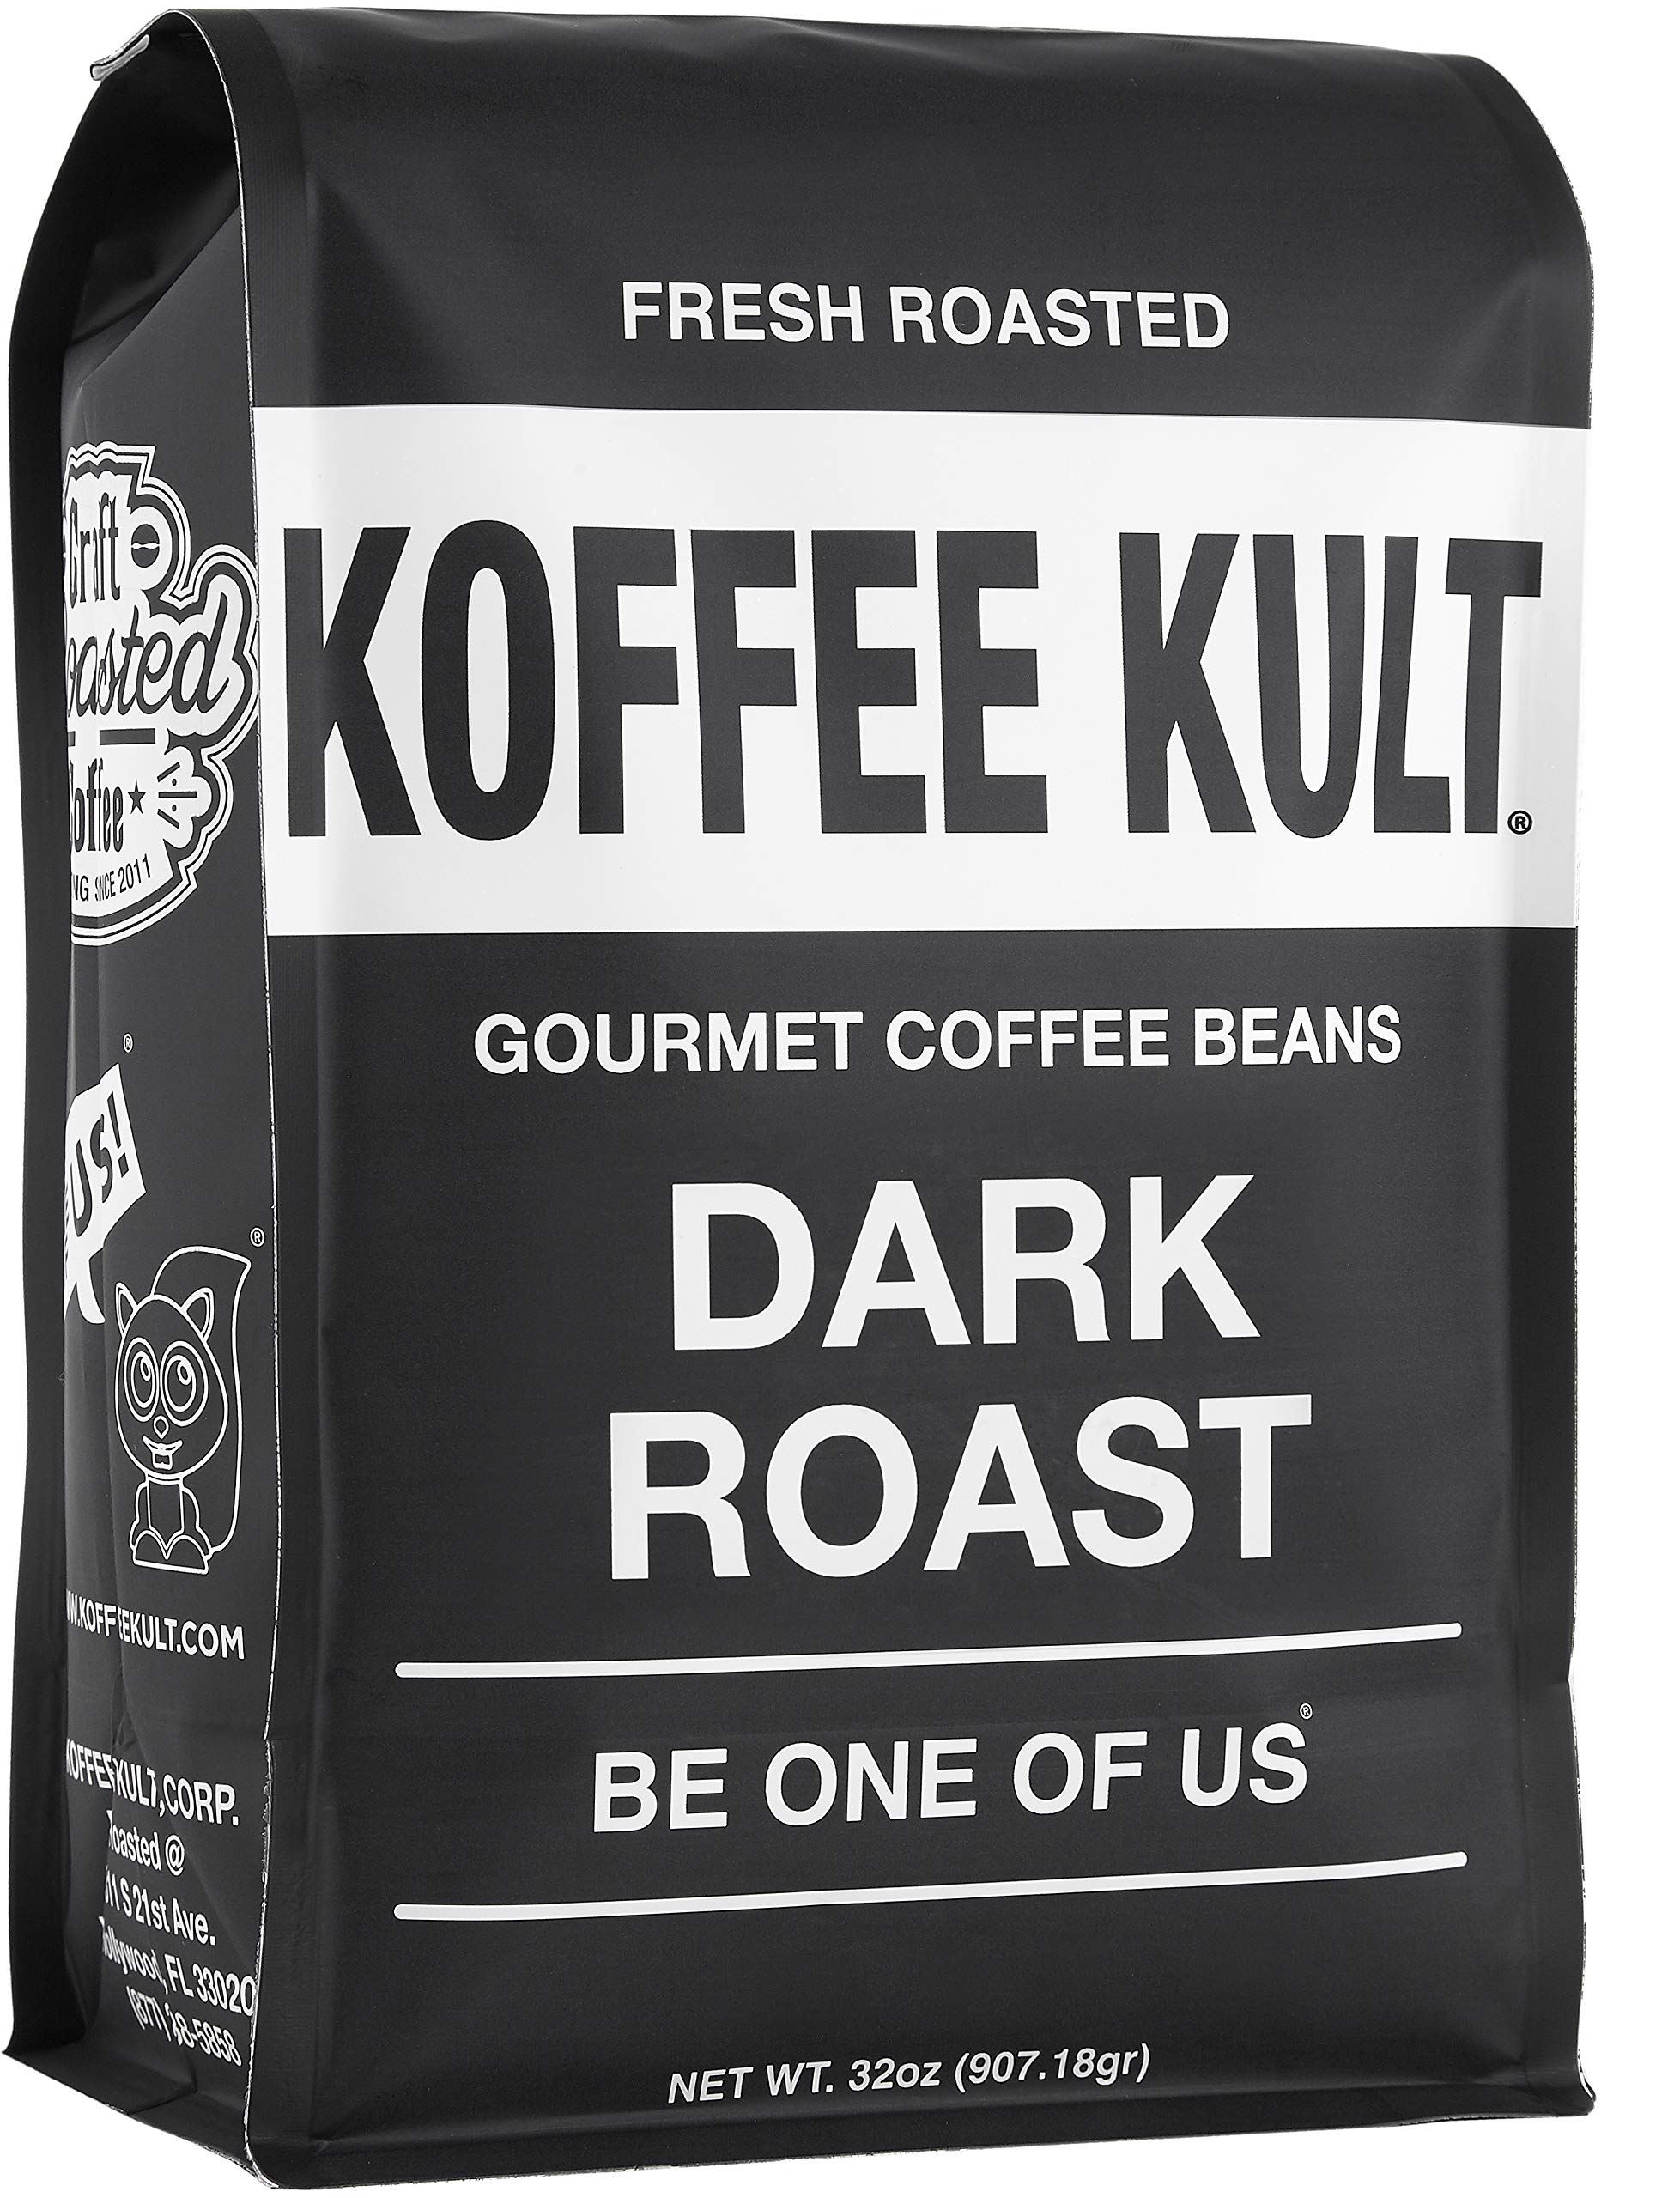 Koffee Kult Dark Roast Coffee Beans - Highest Quality Gourmet - Whole Bean Coffee - Fresh Roasted Coffee Beans, 32oz by Koffee Kult